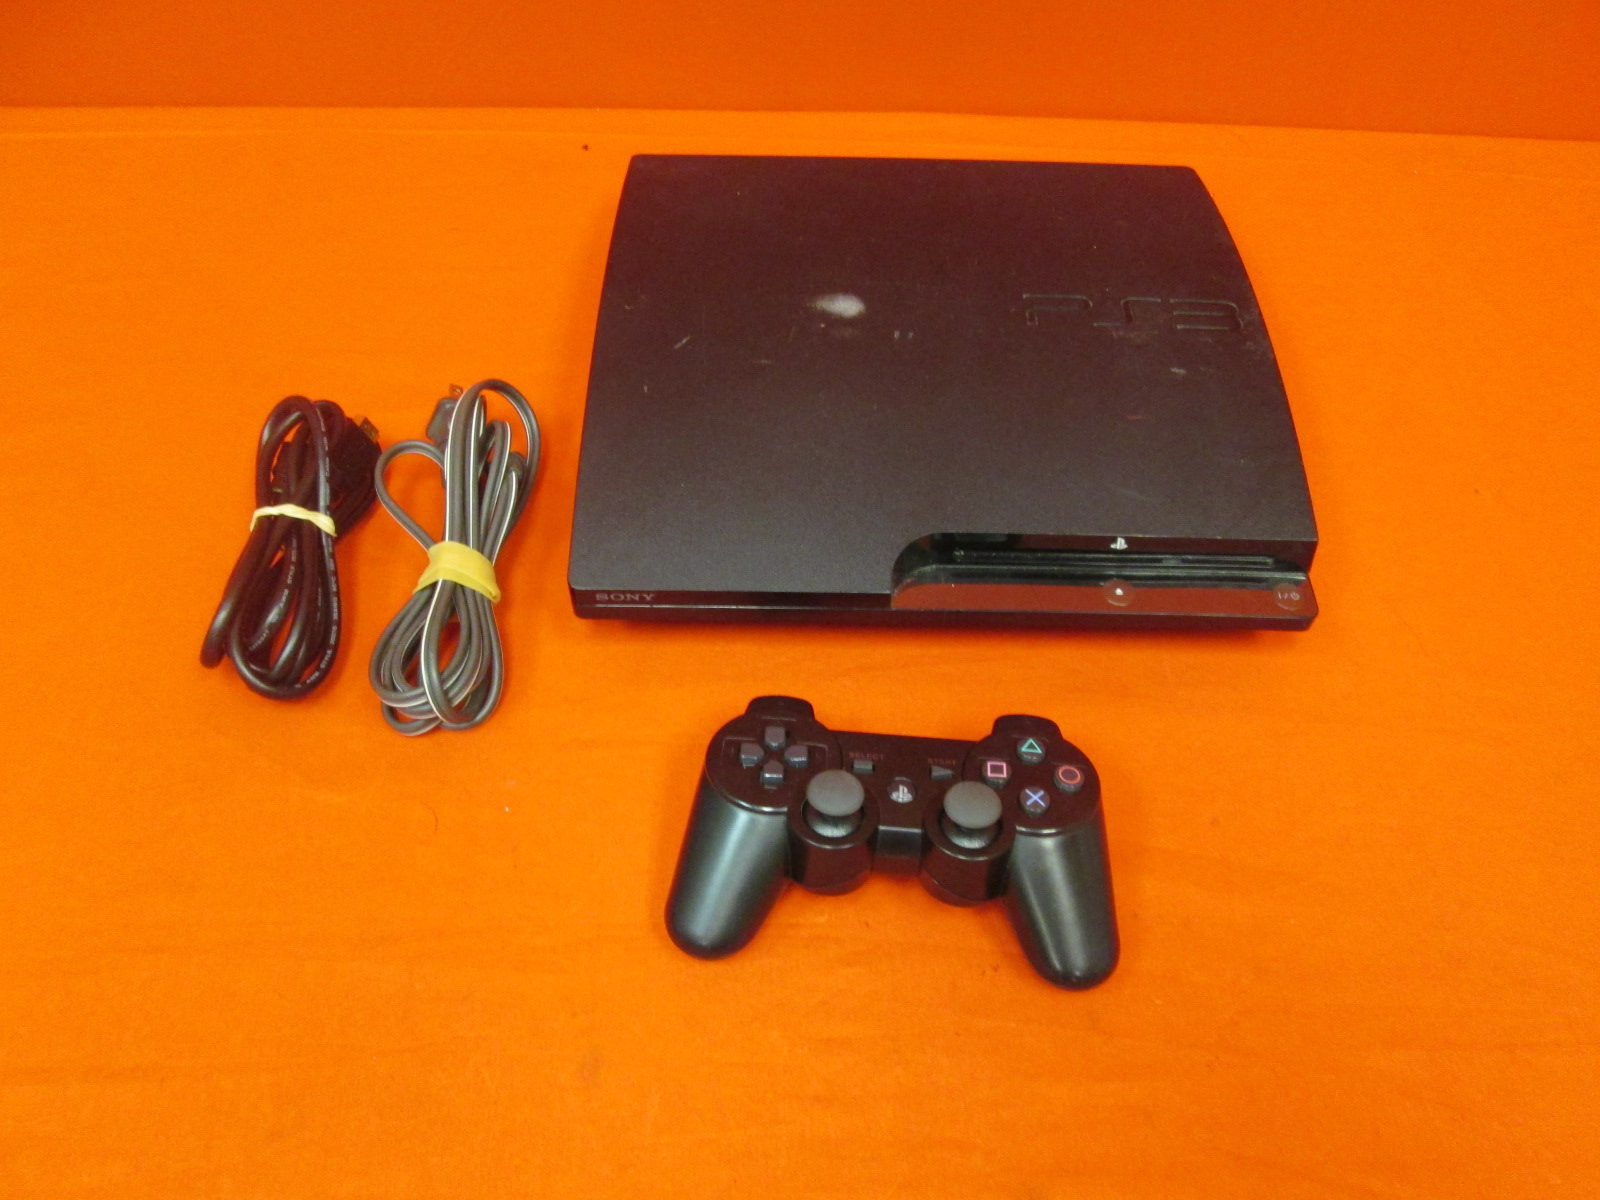 PlayStation 3 Slim 120GB Video Game System With Controller